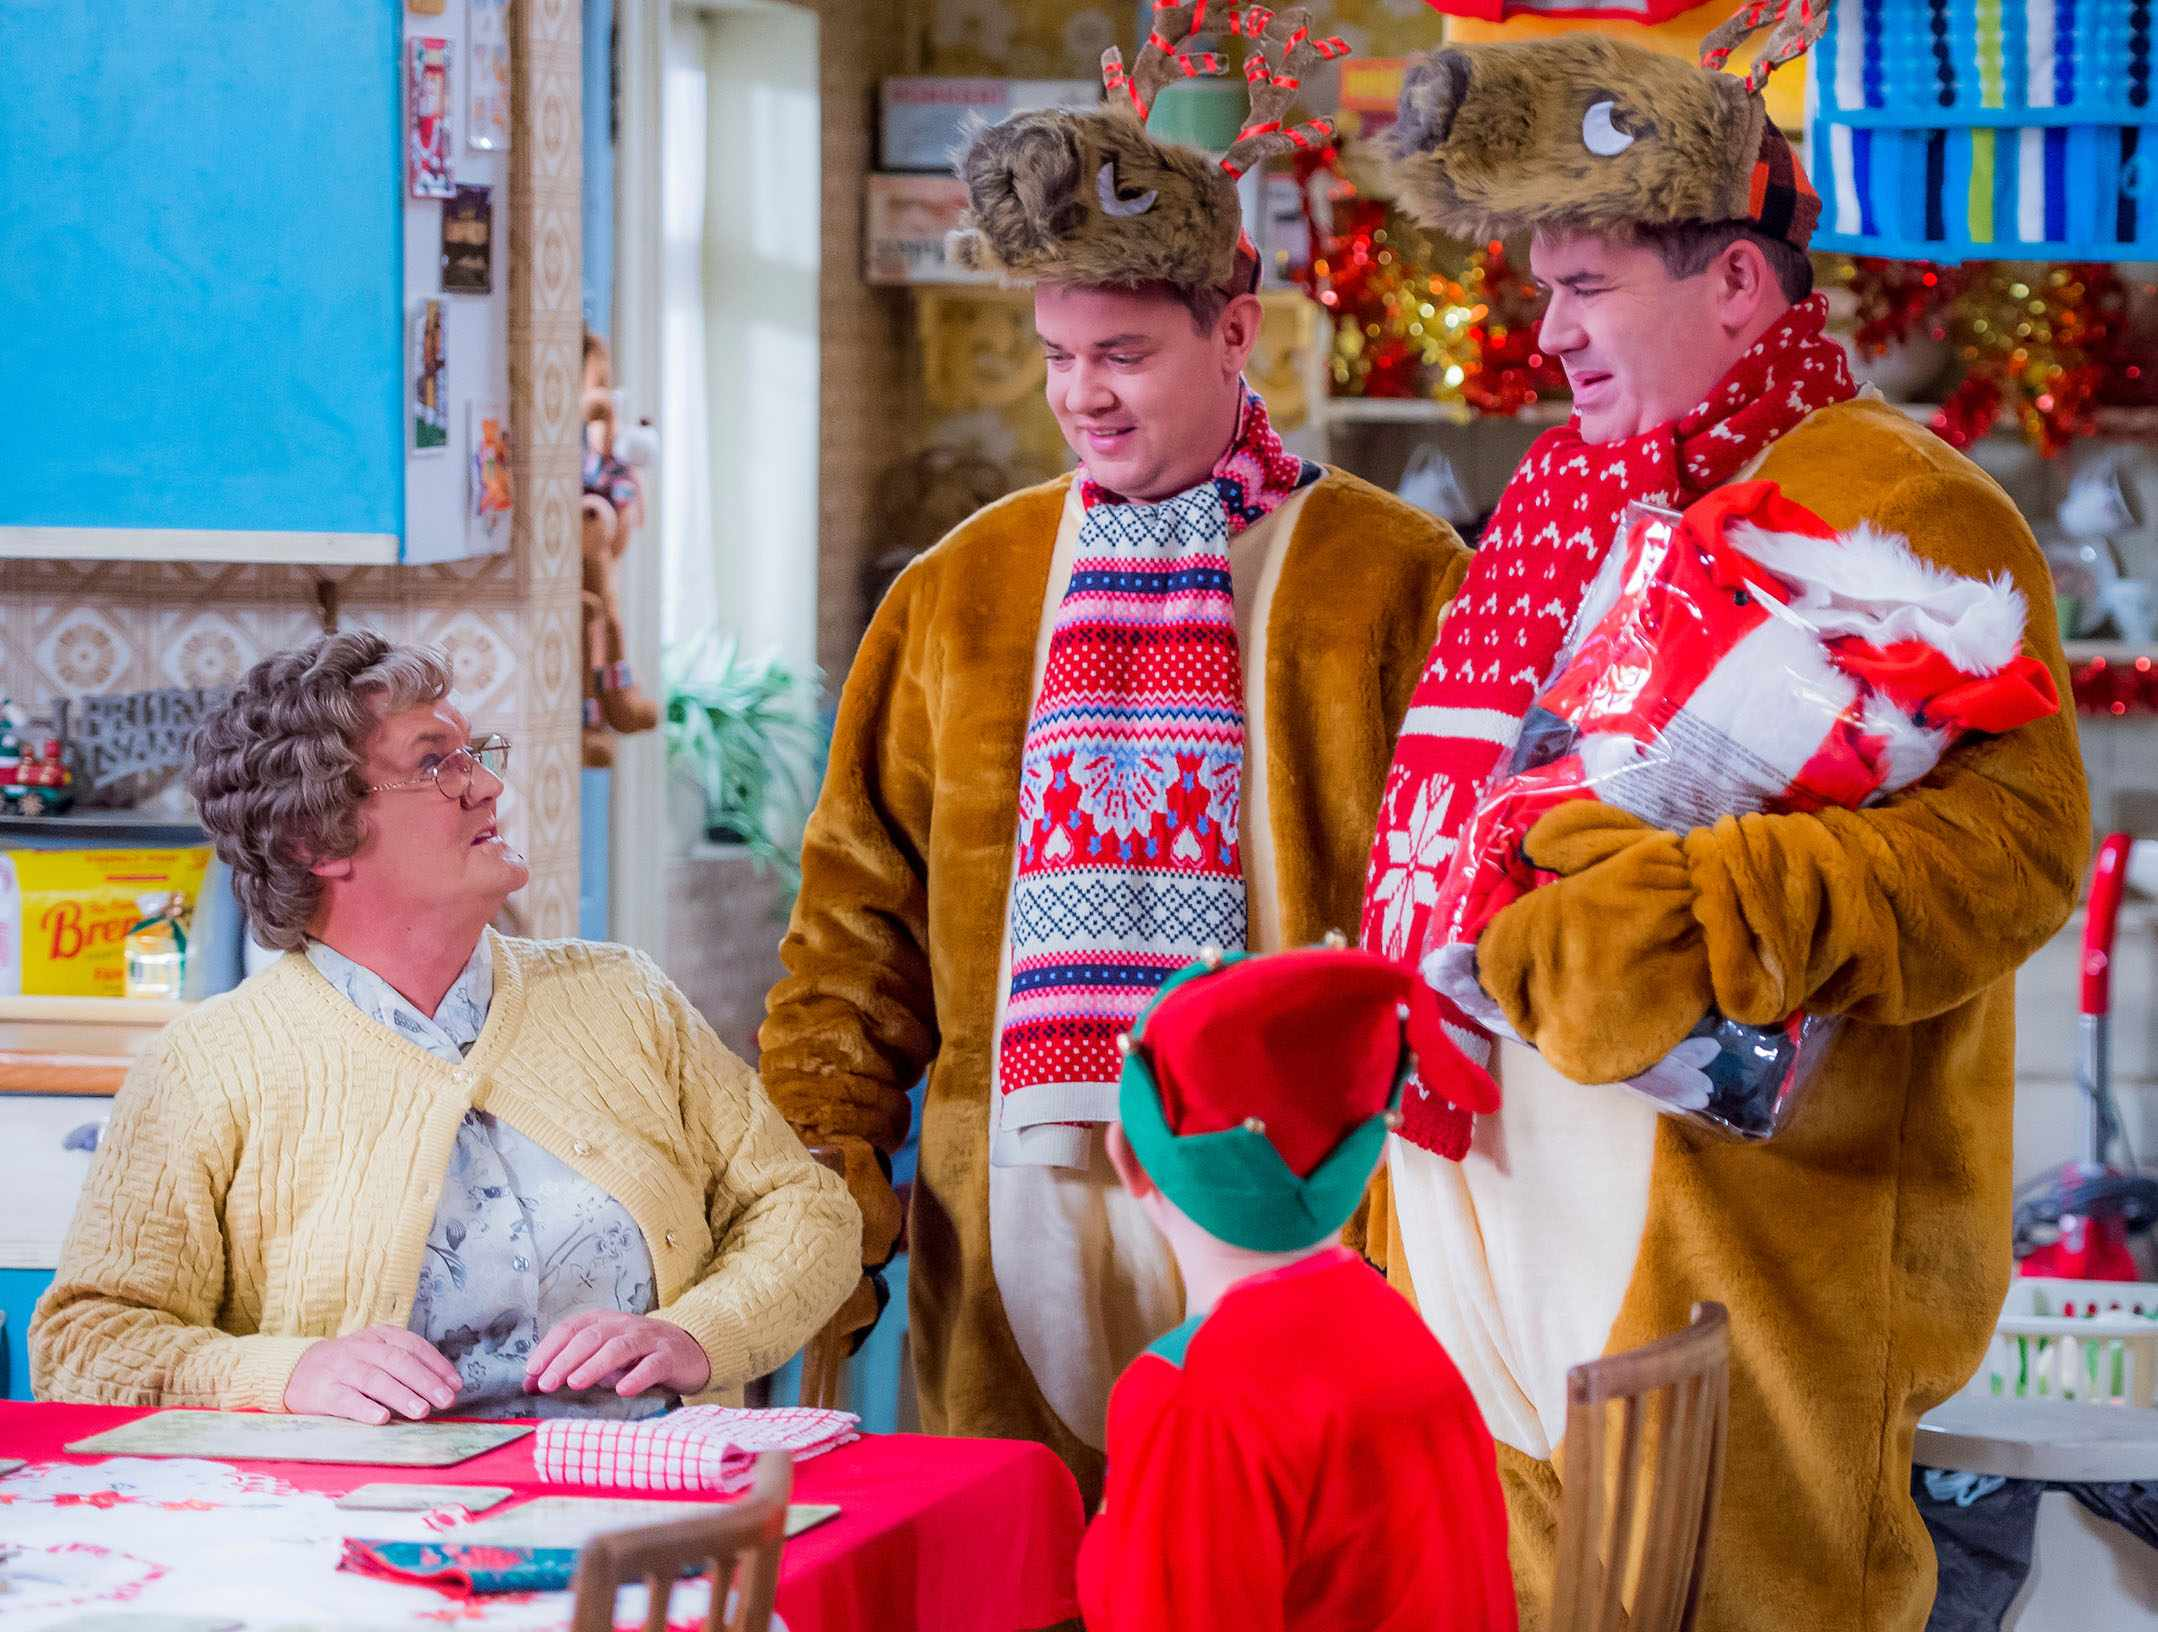 Programme Name: Mrs Brown's Boys Christmas and New Year Special 2017 - TX: n/a - Episode: n/a (No. n/a) - Picture Shows: *STRICTLY EMBARGOED UNTIL SATURDAY 9TH DECEMBER 00:01HR** (L-R) Mrs Brown (BRENDAN O'CARROLL), Buster Brady (DANNY O'CARROLL), Bono Brown (JAMIE O'CARROLL), Dermot Brown (PADDY HOULIHAN) - (C) BBC Studios - Photographer: Alan Peebles  (BBC, TL)